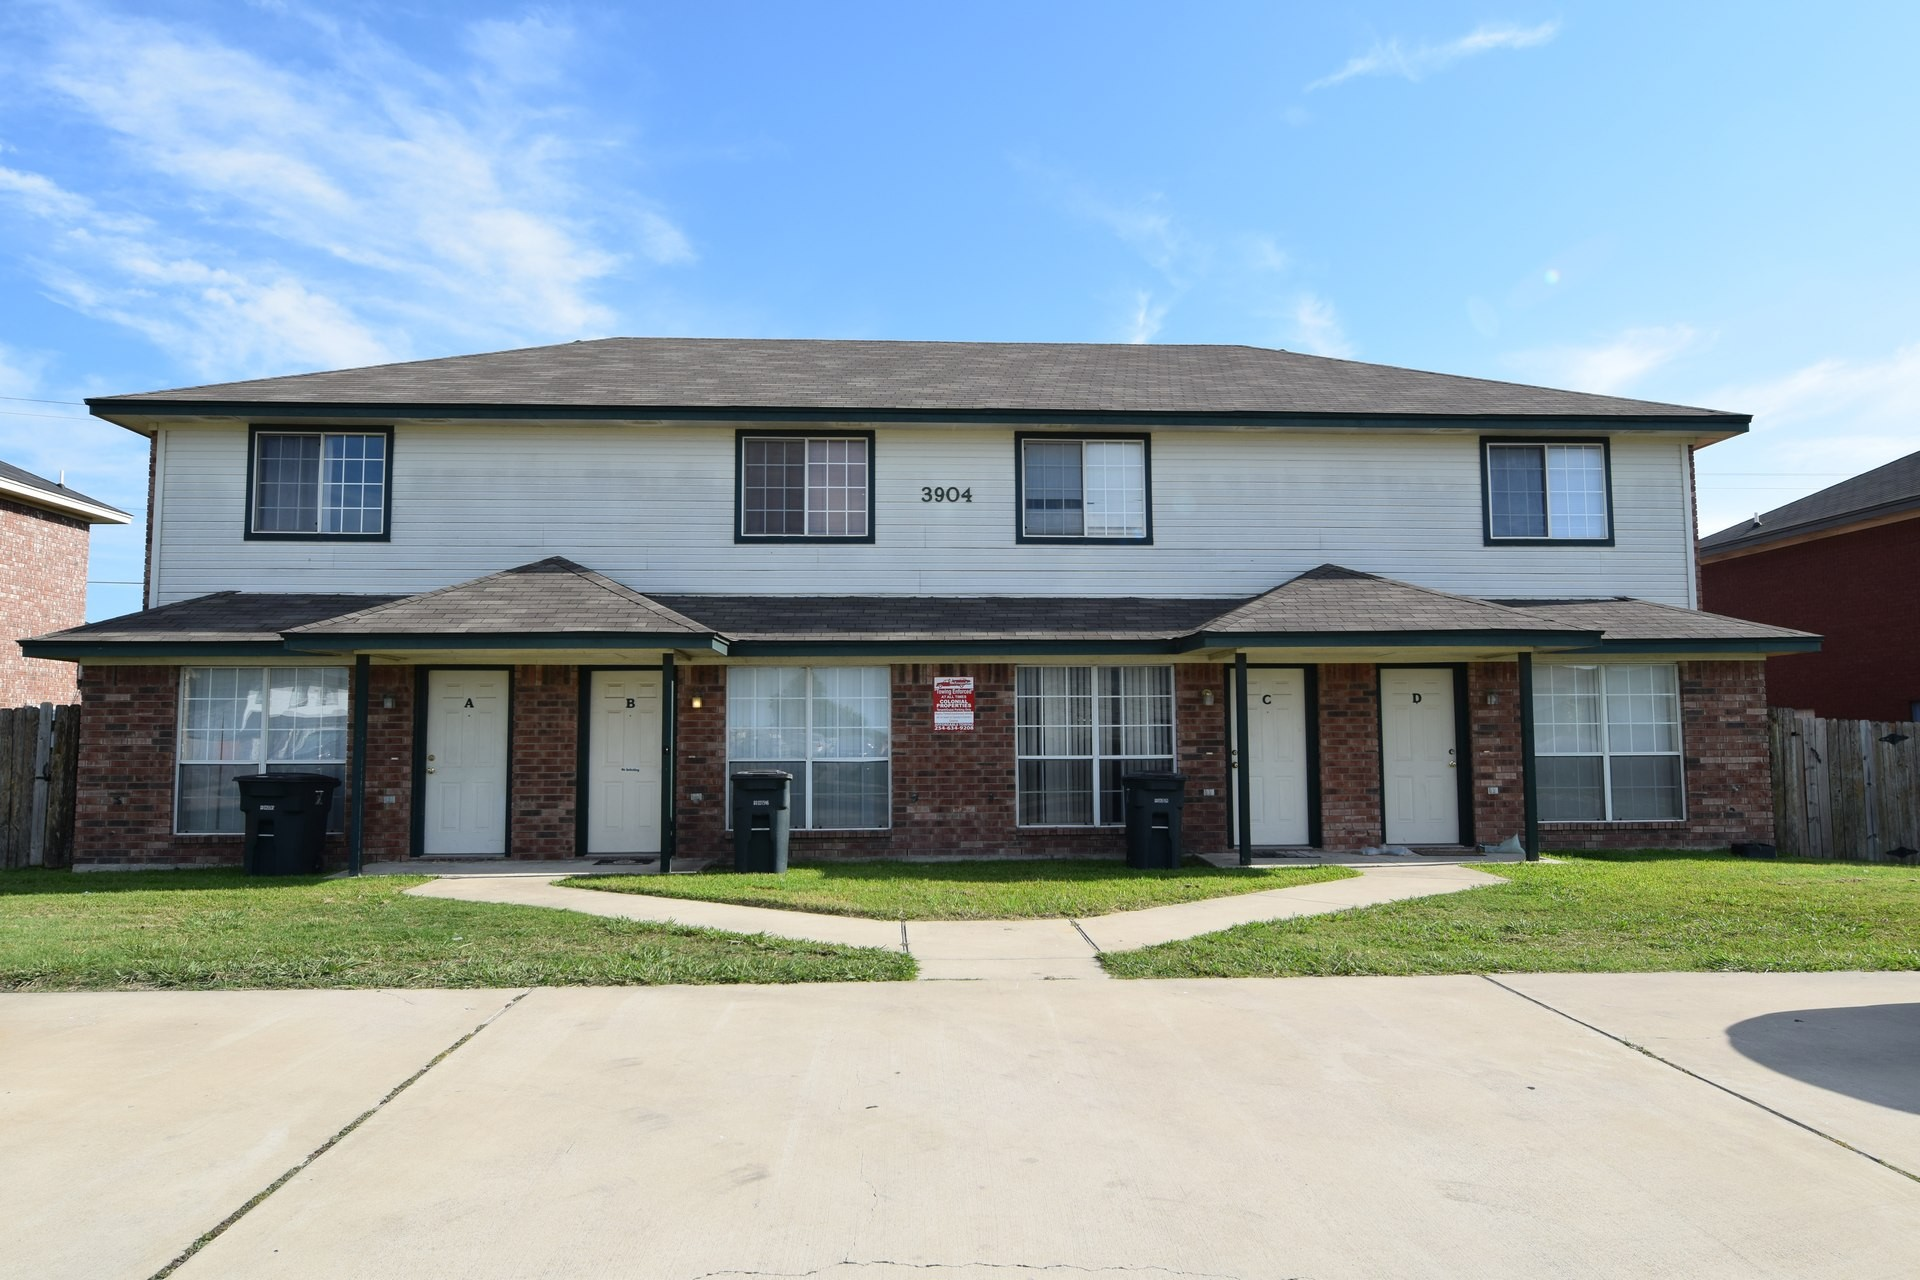 3904 Gus Dr Killeen Tx 76549 Apartment For Rent Padmapper